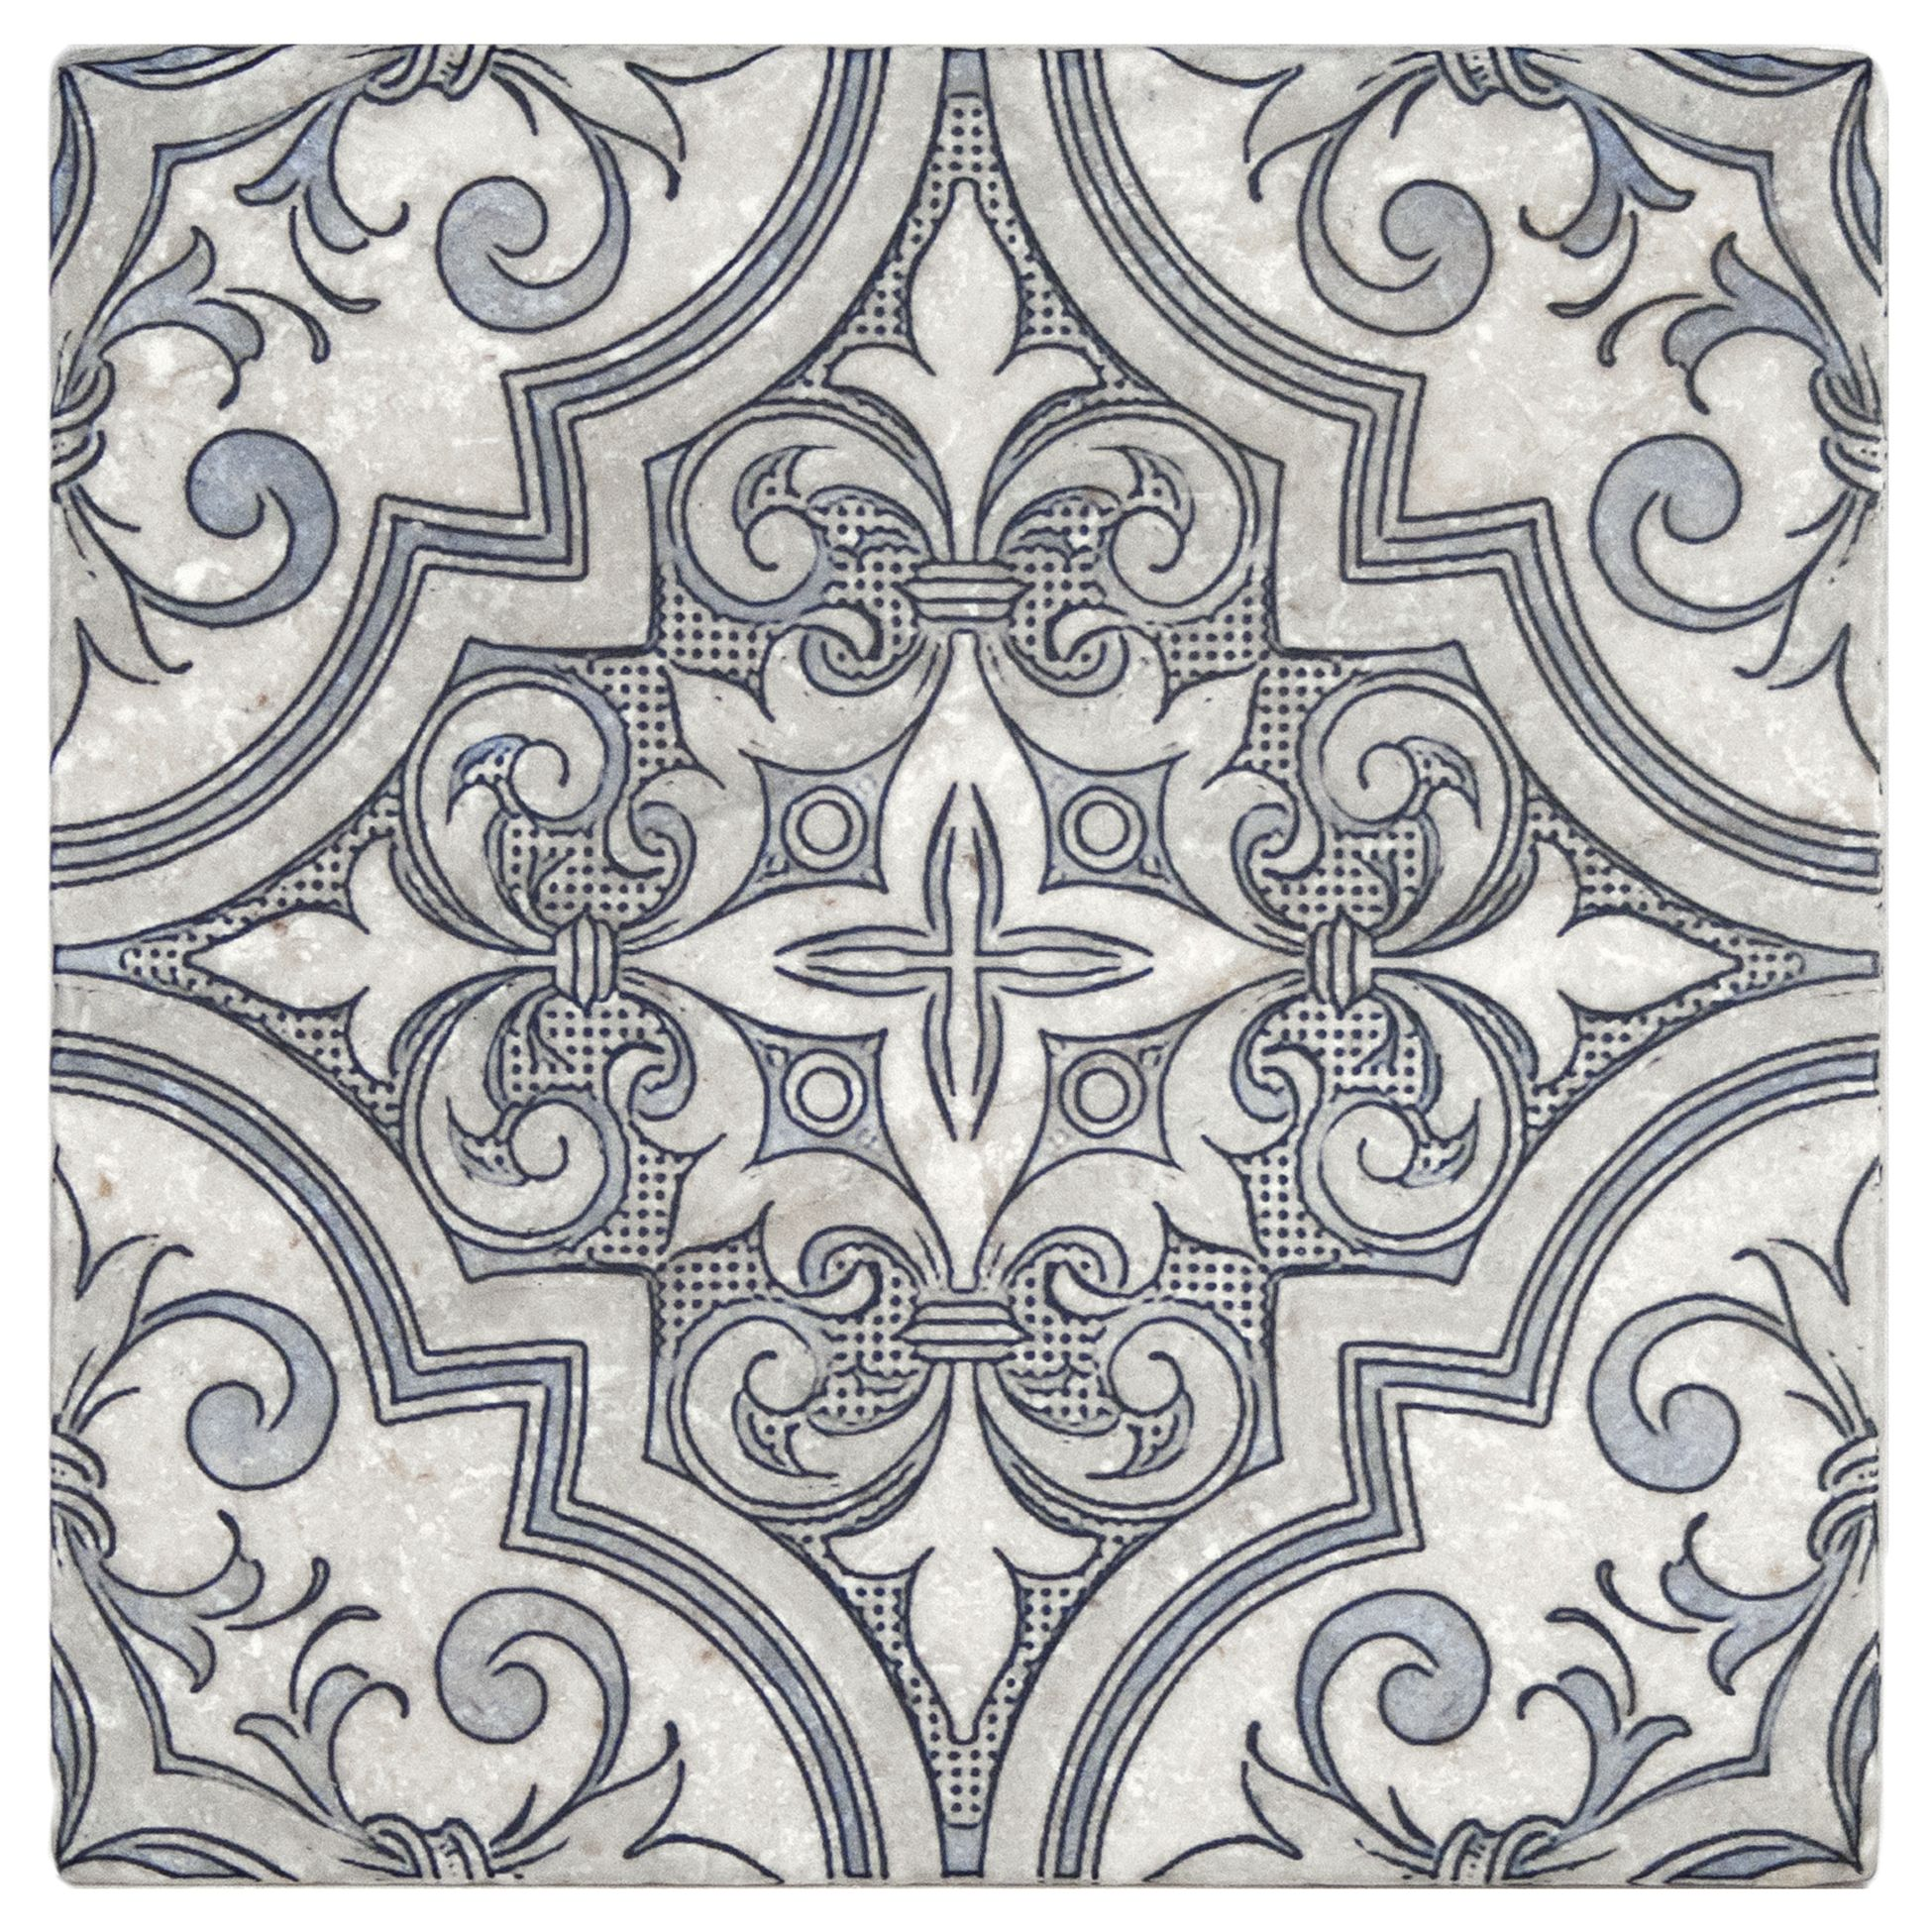 Designer Tile On French Limestone Perle Blanc 6x6 Or 12x12 Hand Crafted Designs